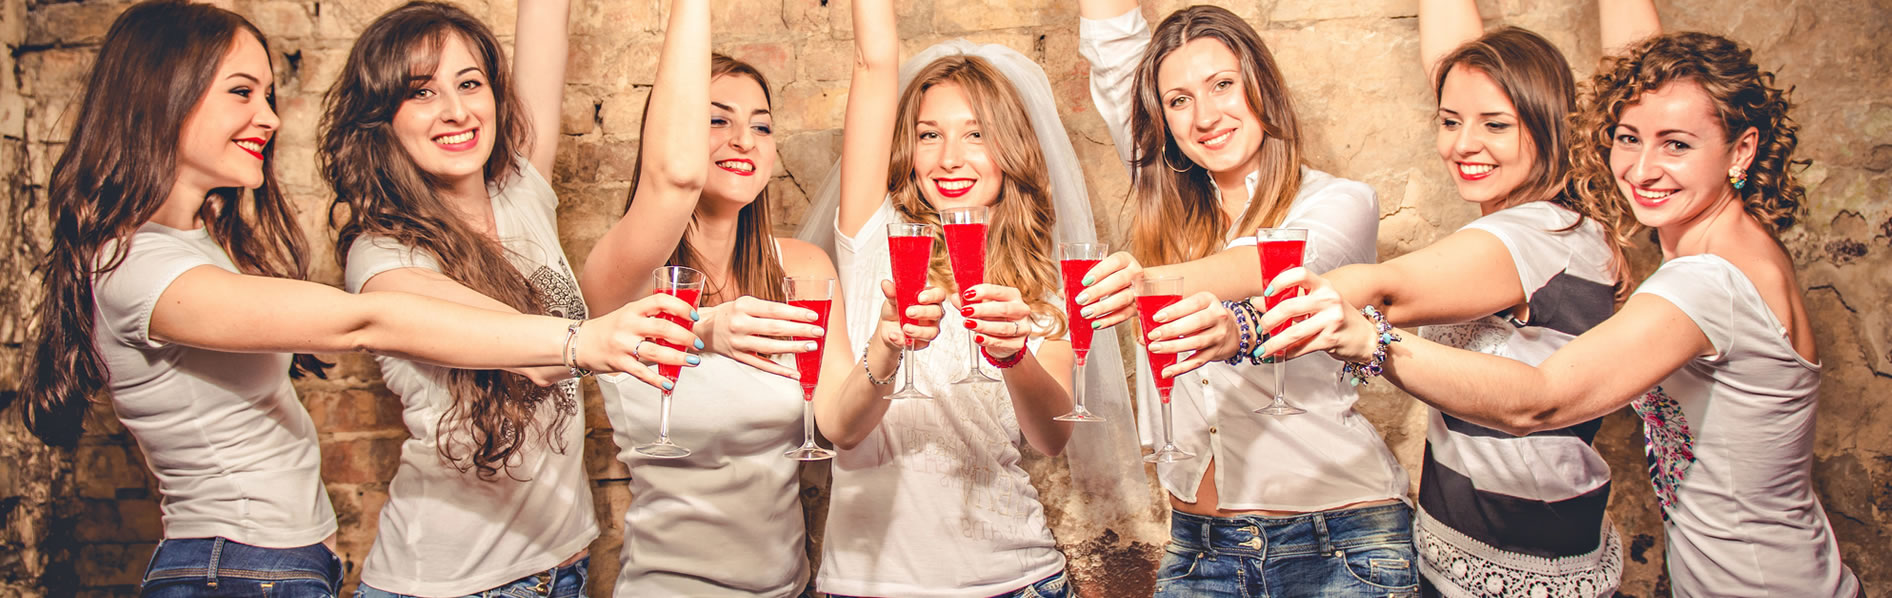 Girls in jeans holding out flutes with red cocktails in